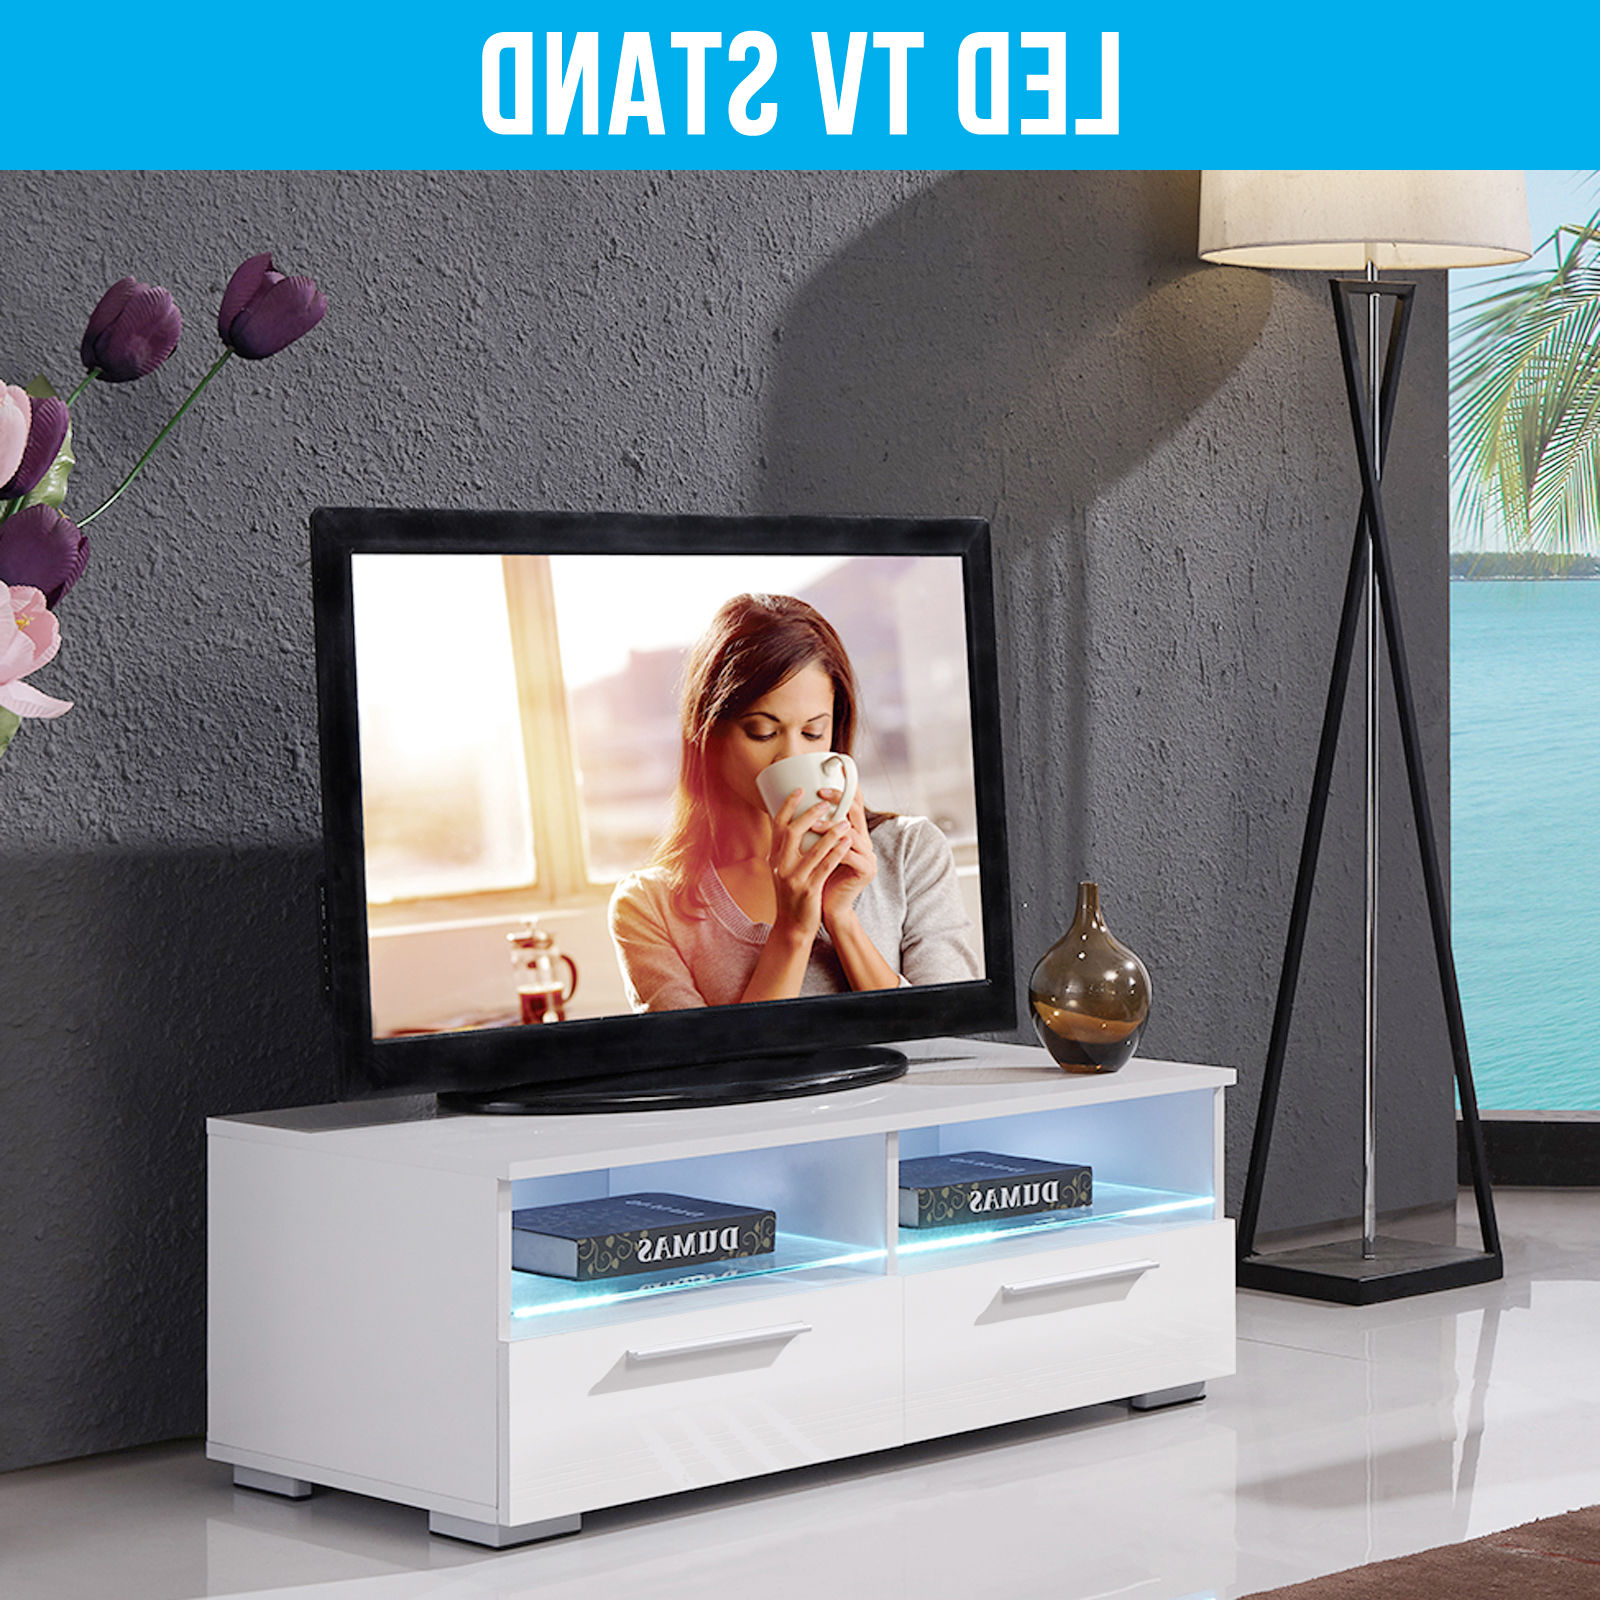 Most Popular 100Cm Tv Stands Pertaining To Modern 100Cm High Gloss White Rgb Led Tv Stand Unit Cabinet Living (View 8 of 20)